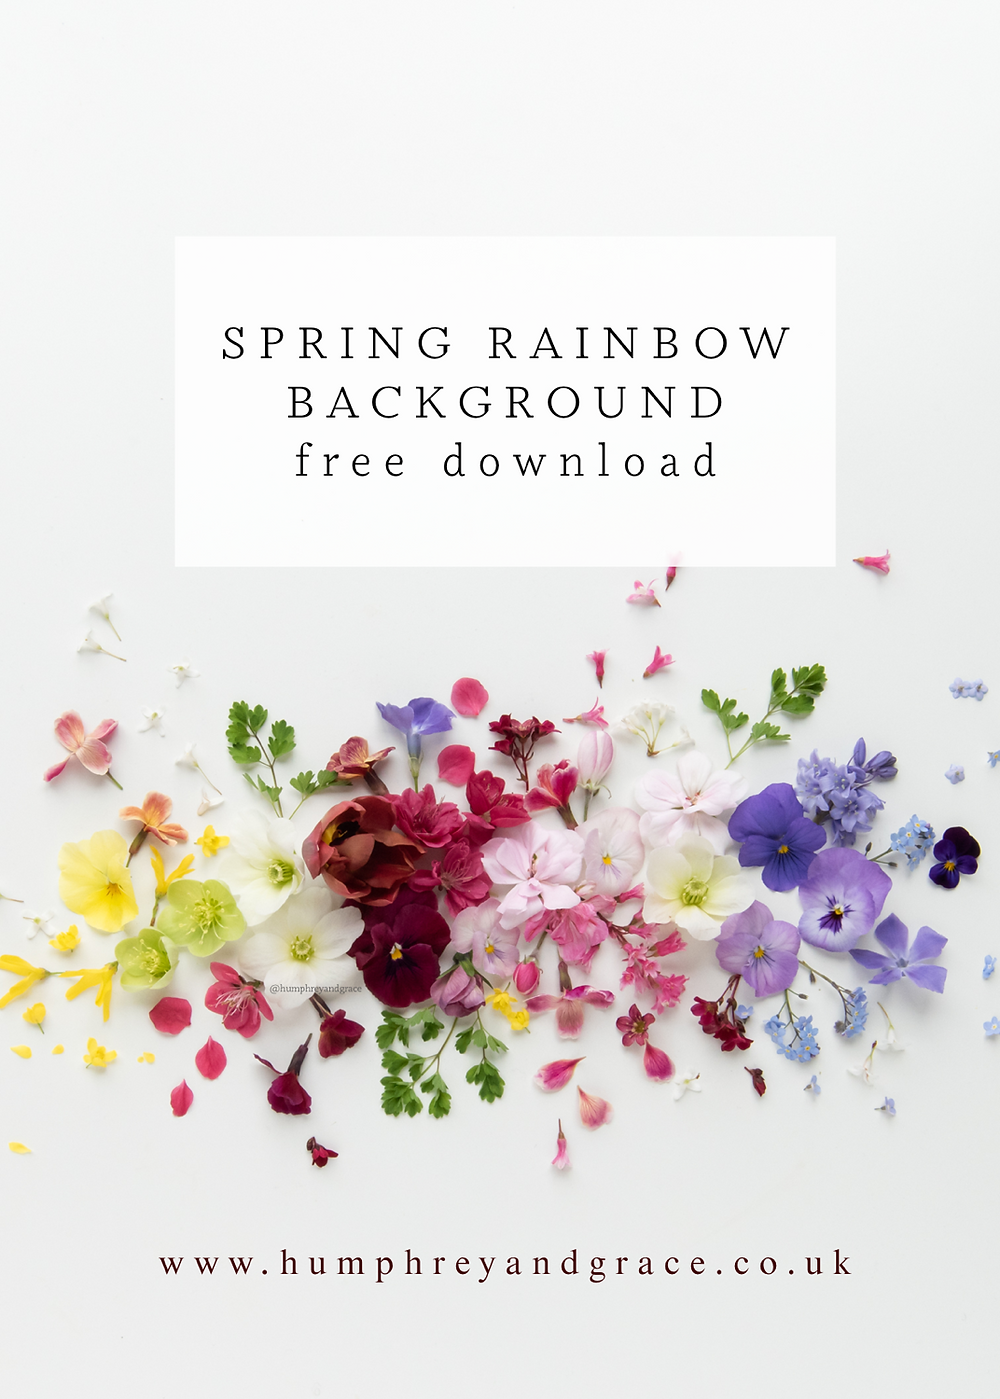 Rainbow flowers on a white background